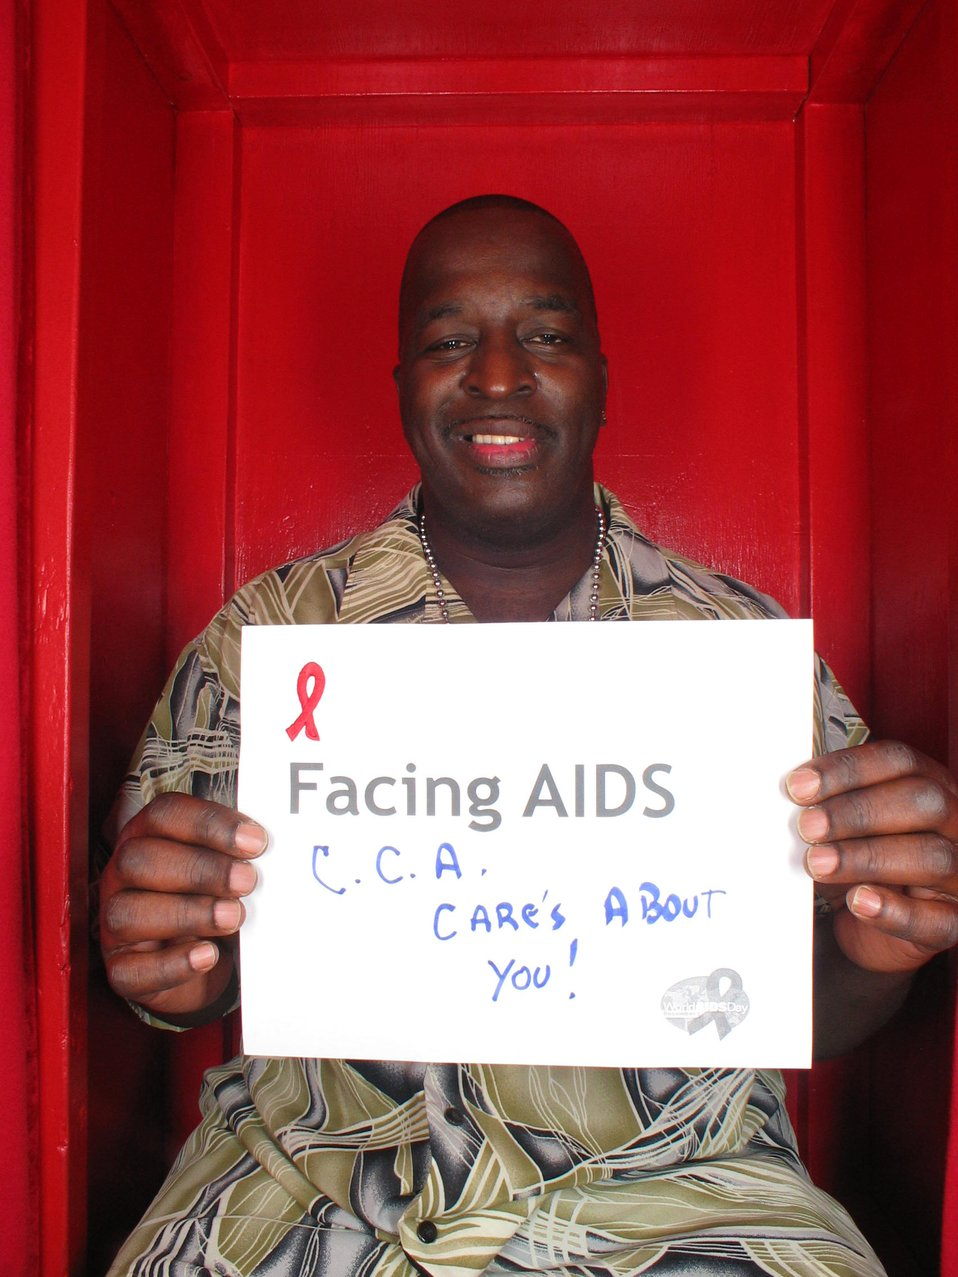 Facing AIDS C.C.A care's about you!